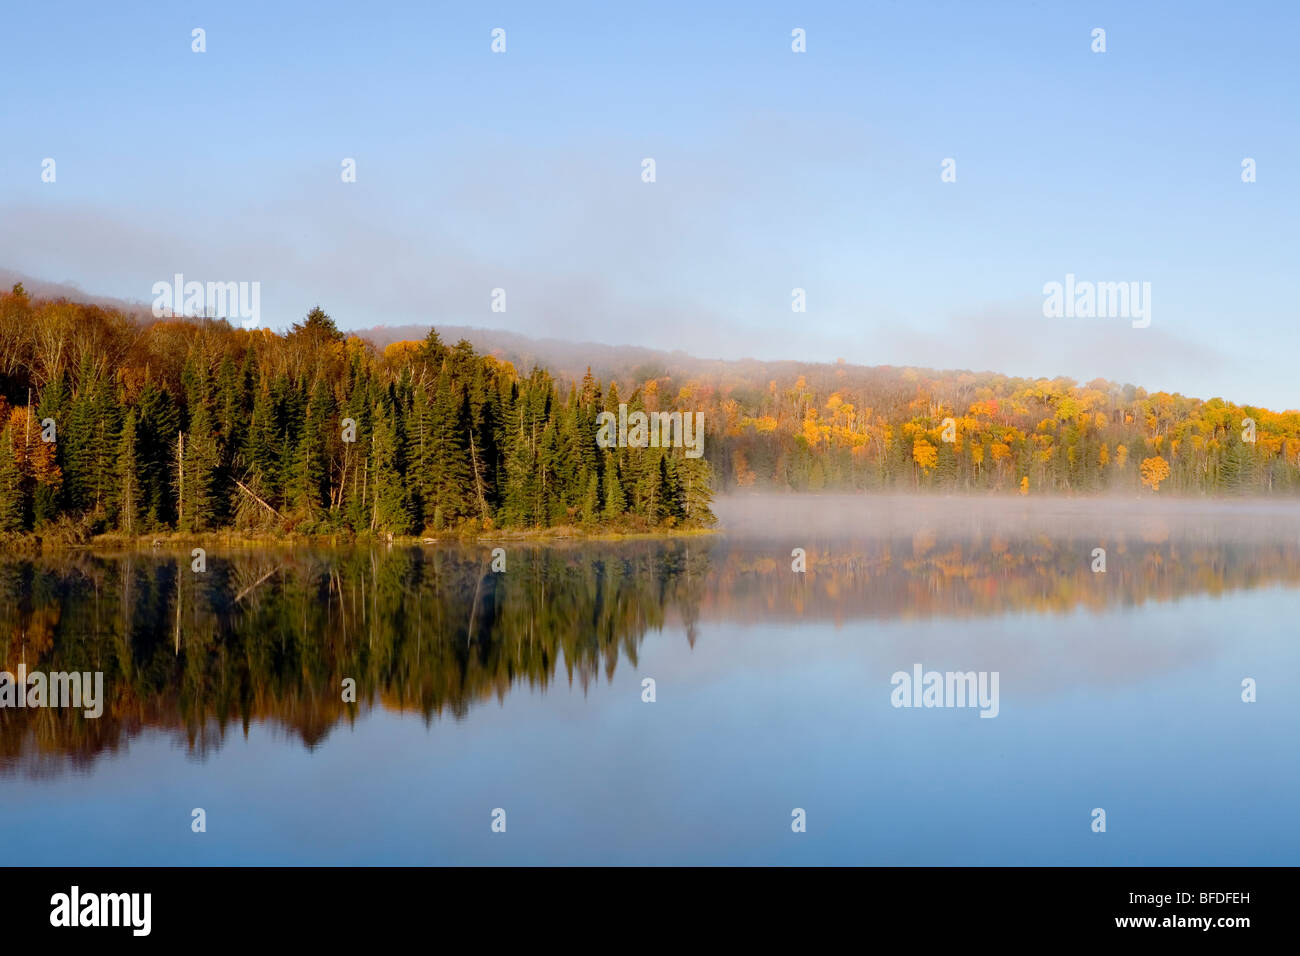 Morning mist over Brewer Lake, Algonquin Provincial Park, Ontario, Canada - Stock Image